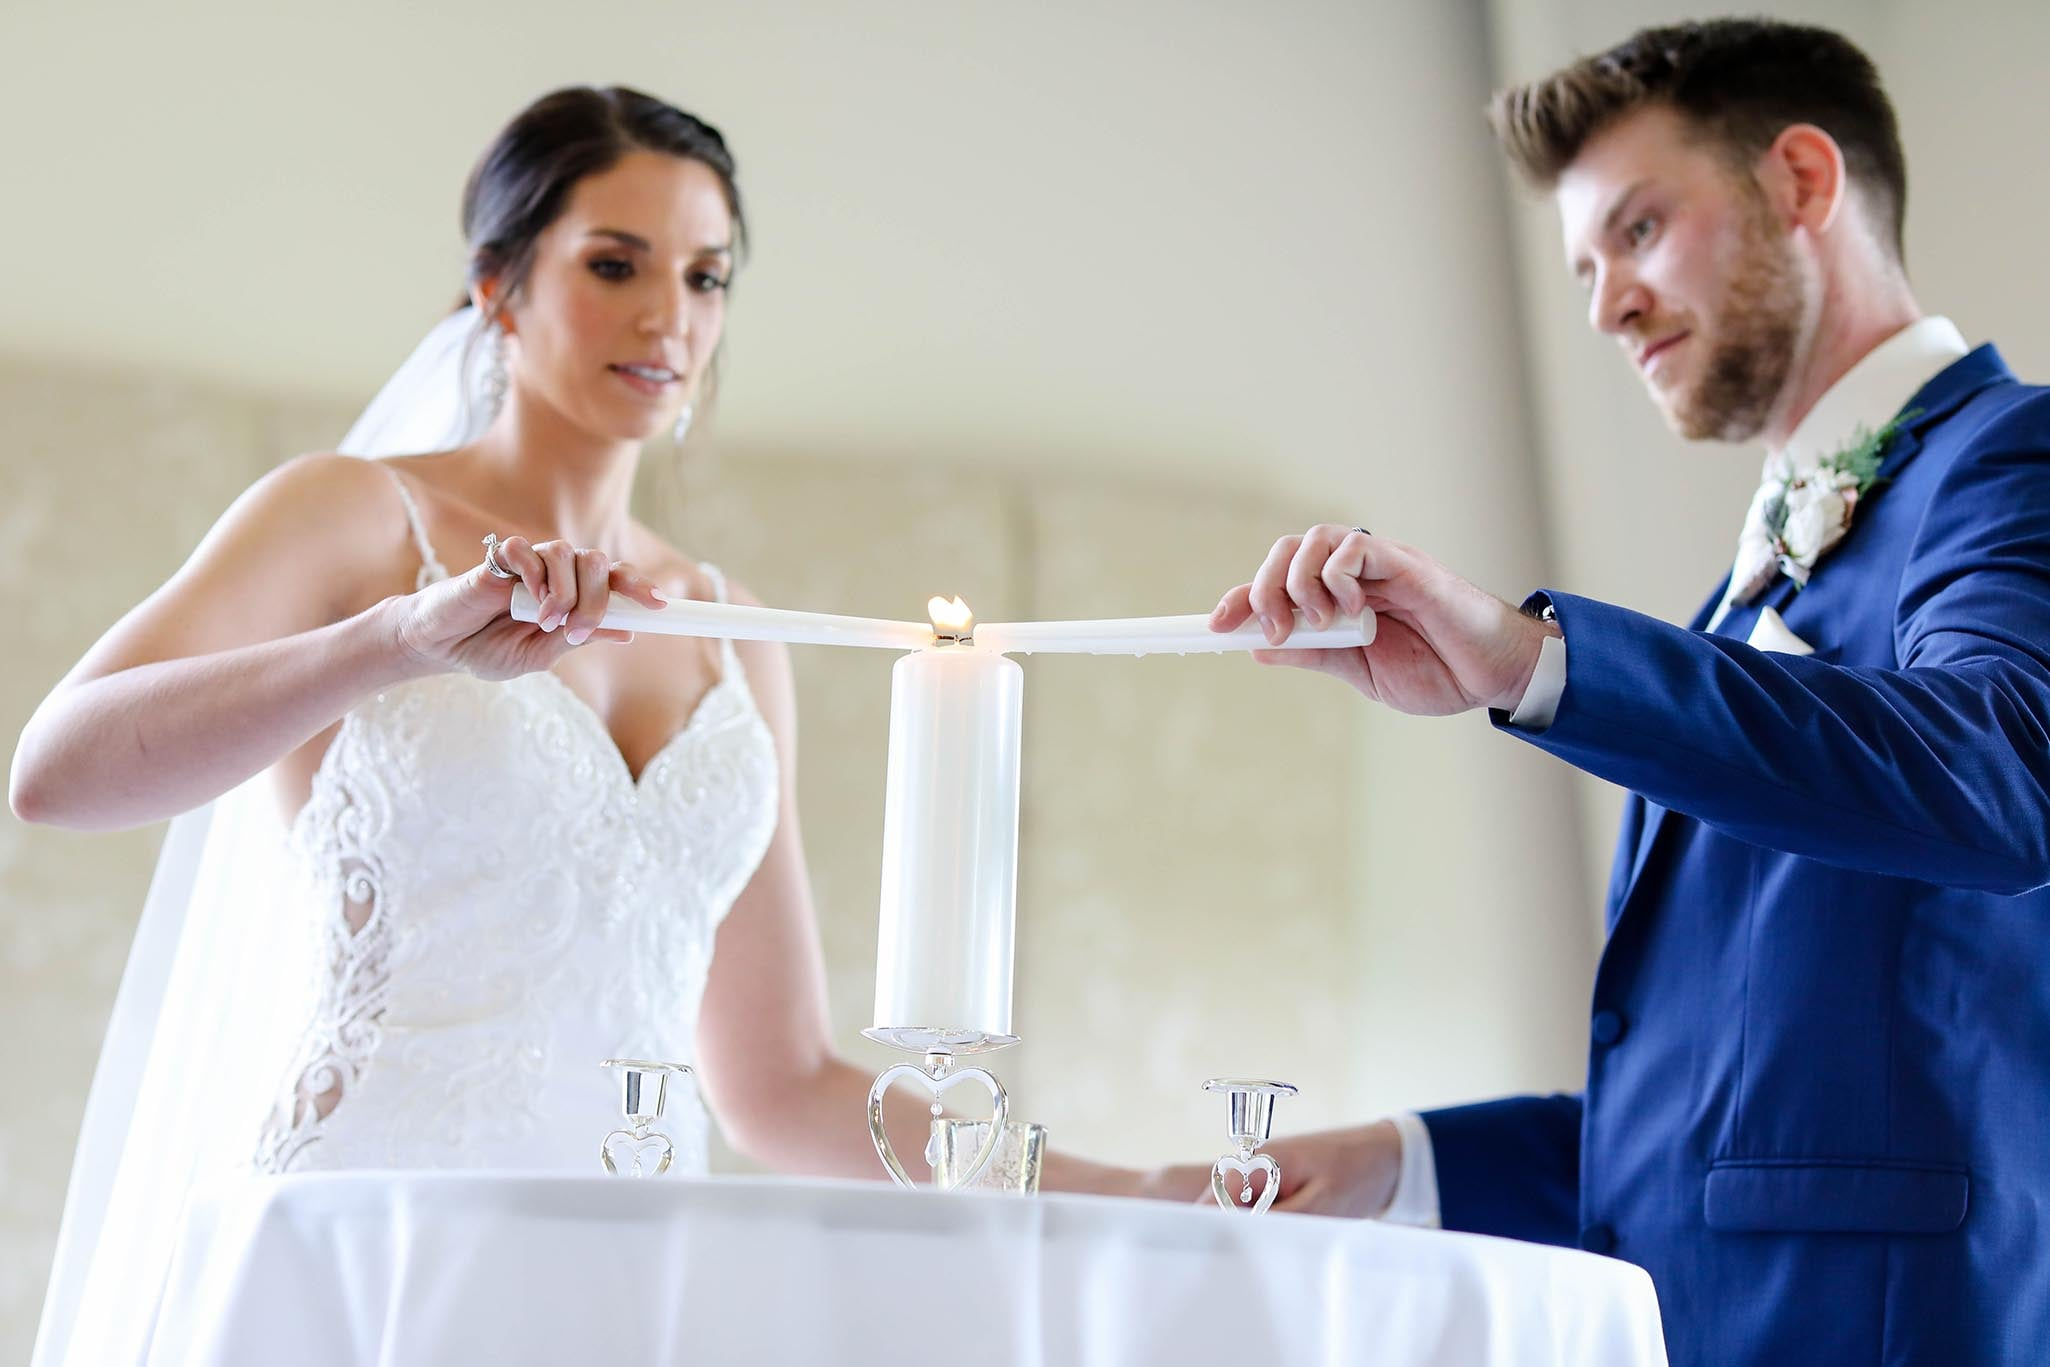 inside-ceremony-spaces-mn-bavaria-downs14.jpg